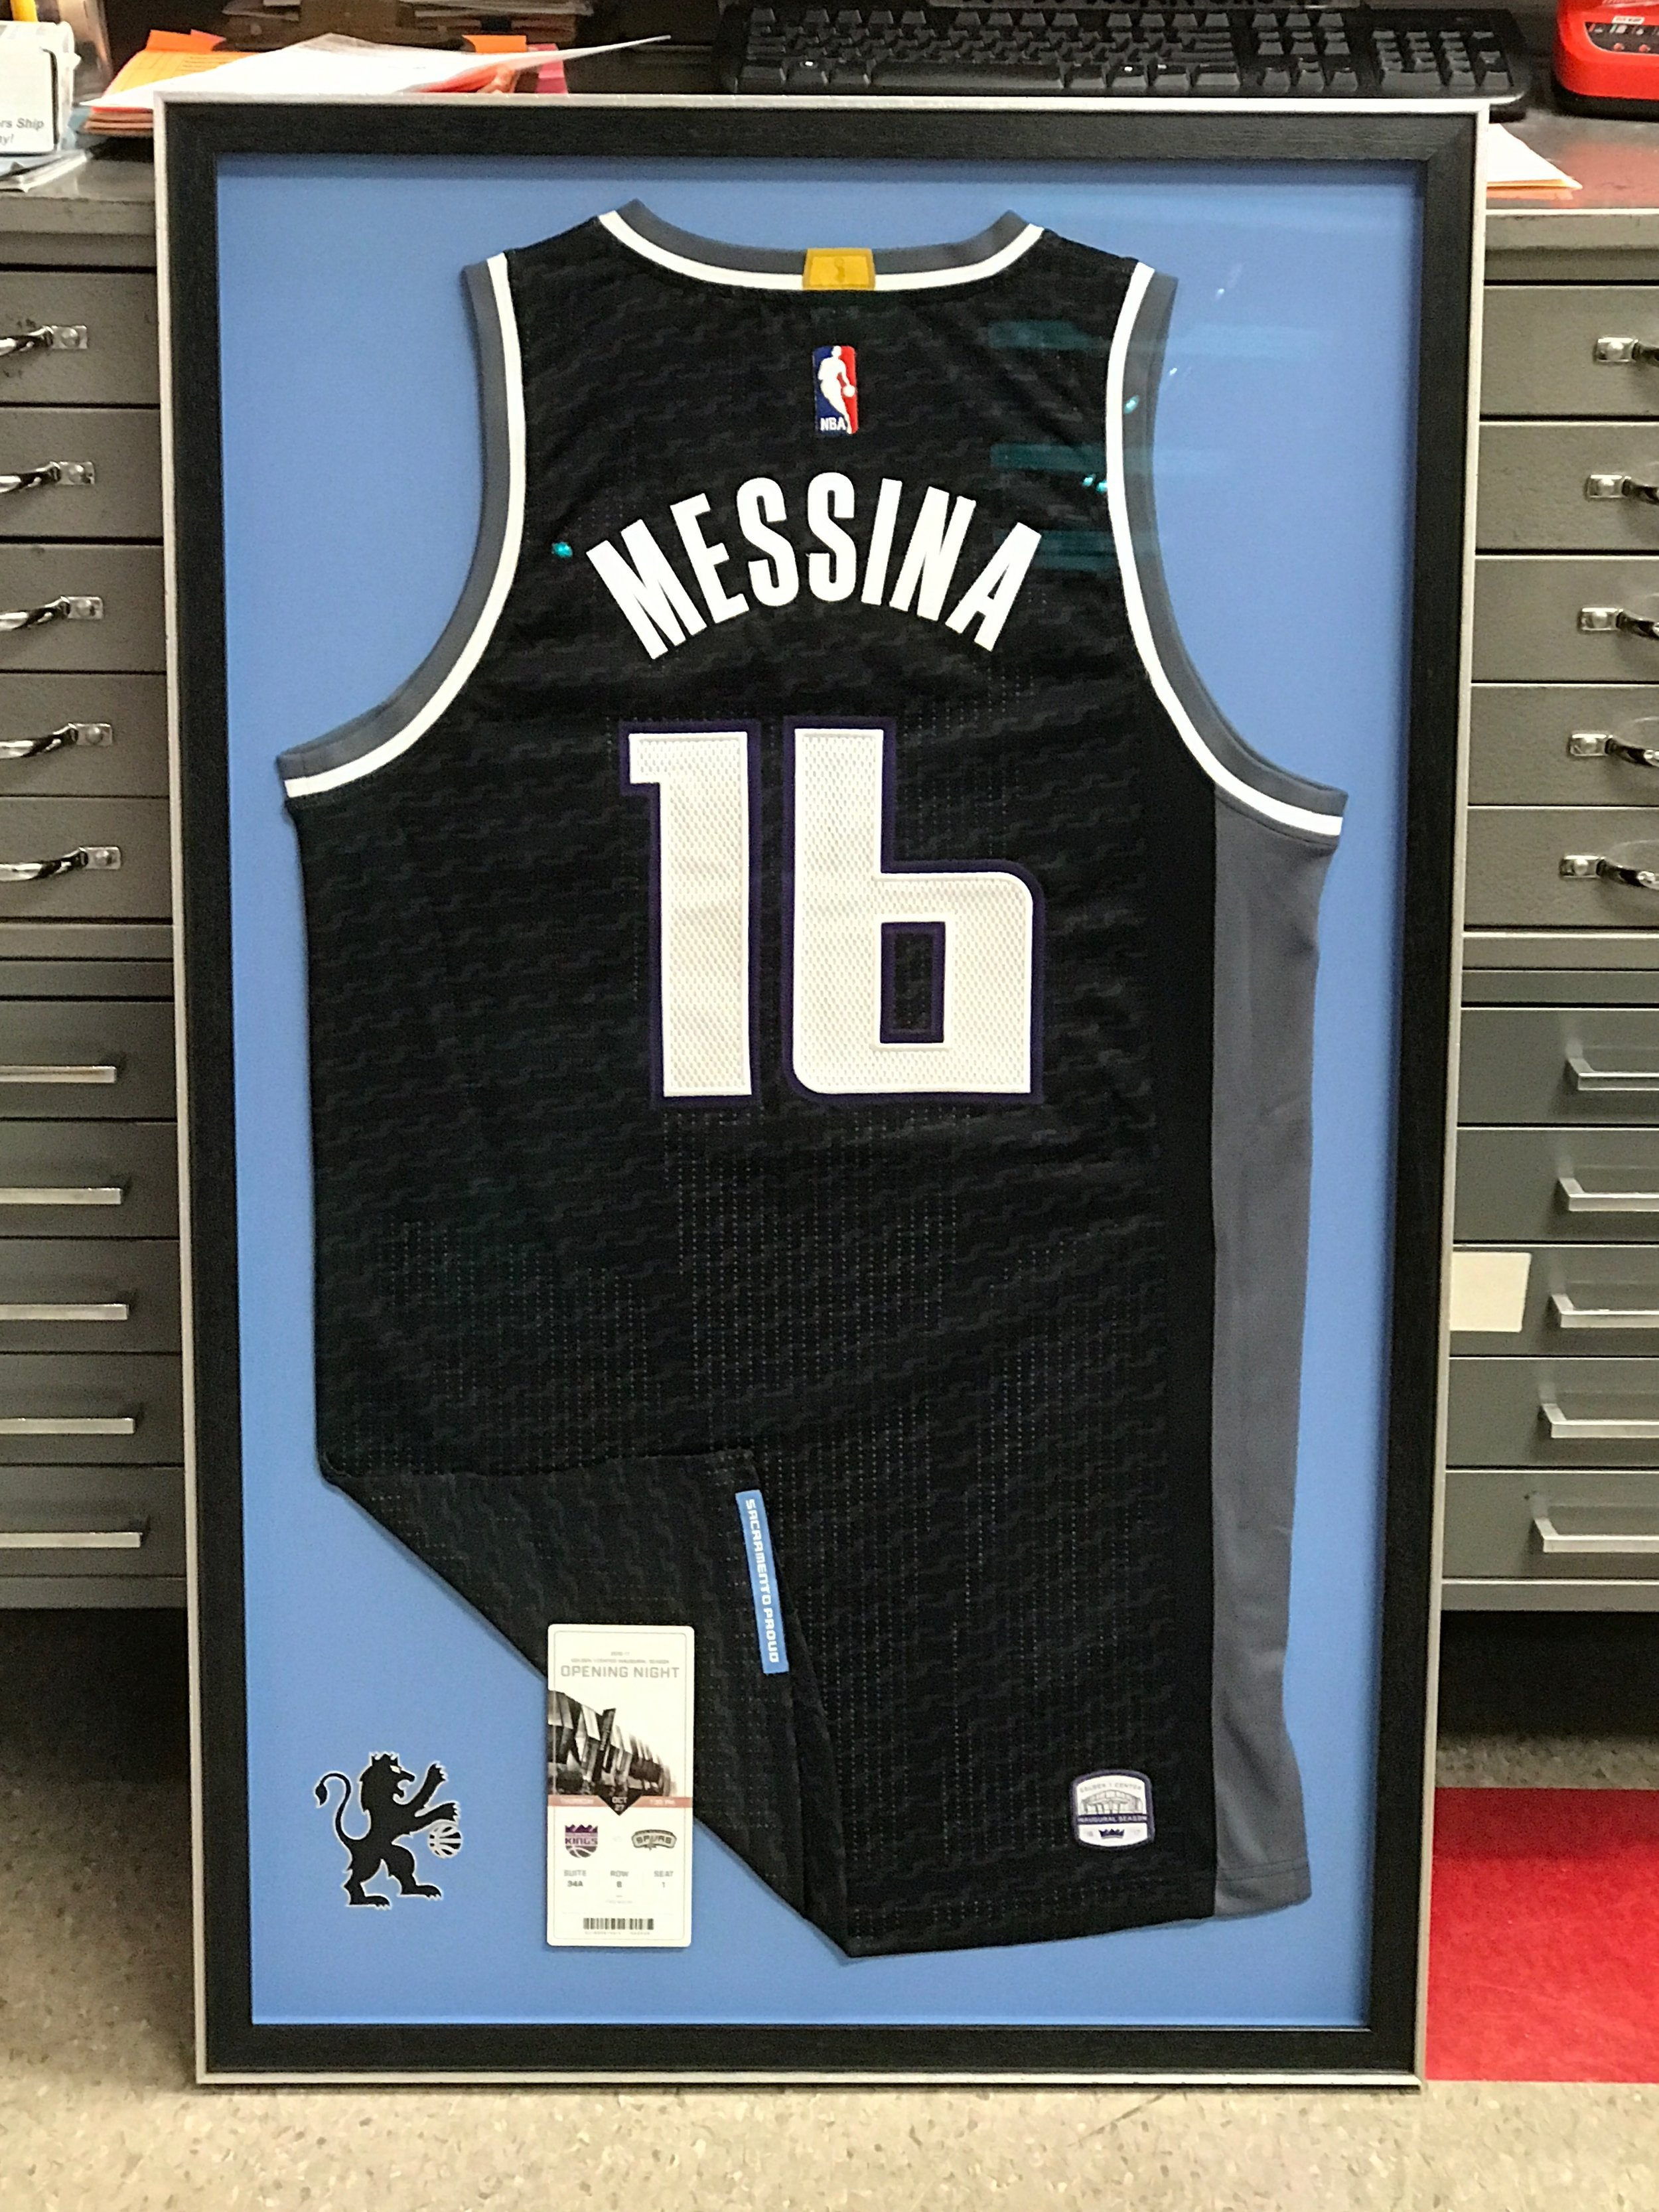 Sacramento Kings jersey with ticket and logo